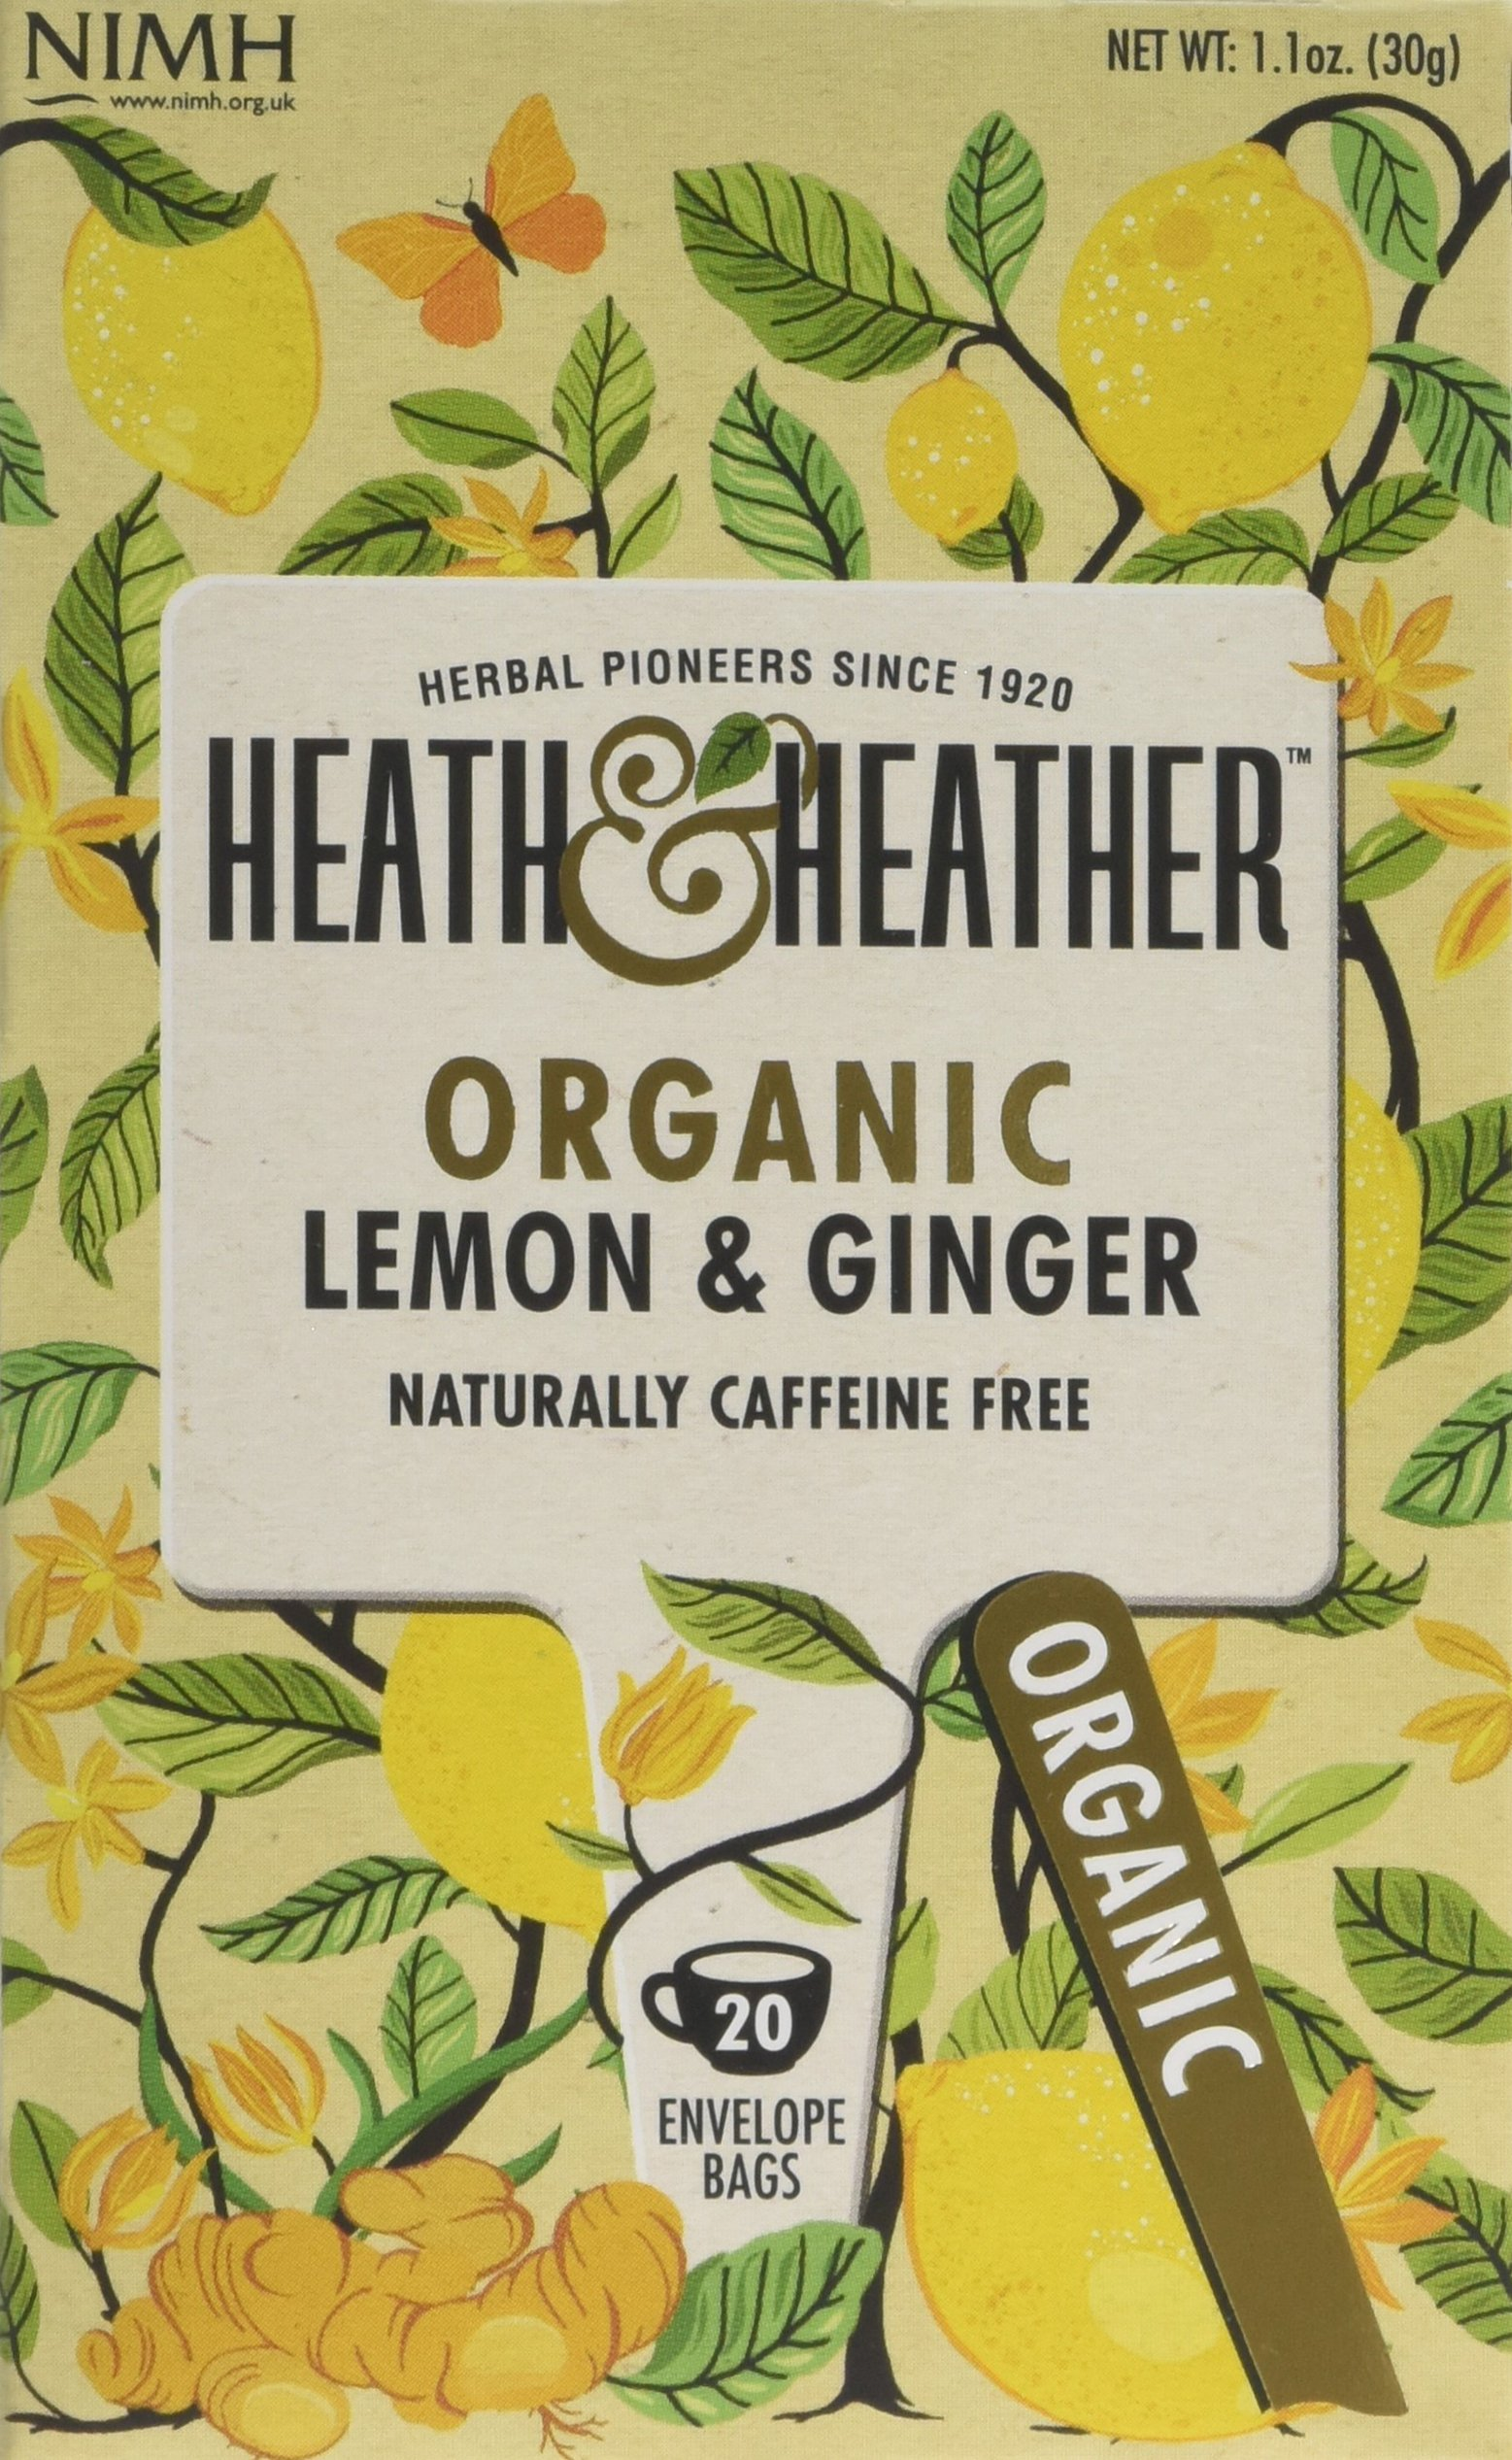 Heath & Heather organic lemon and ginger tea bundle (soil association) (infusions) (6 packs of 20 bags) (120 bags) (a fruity, spicy tea with aromas of ginger, lemon) (brews in 3-5 minutes)